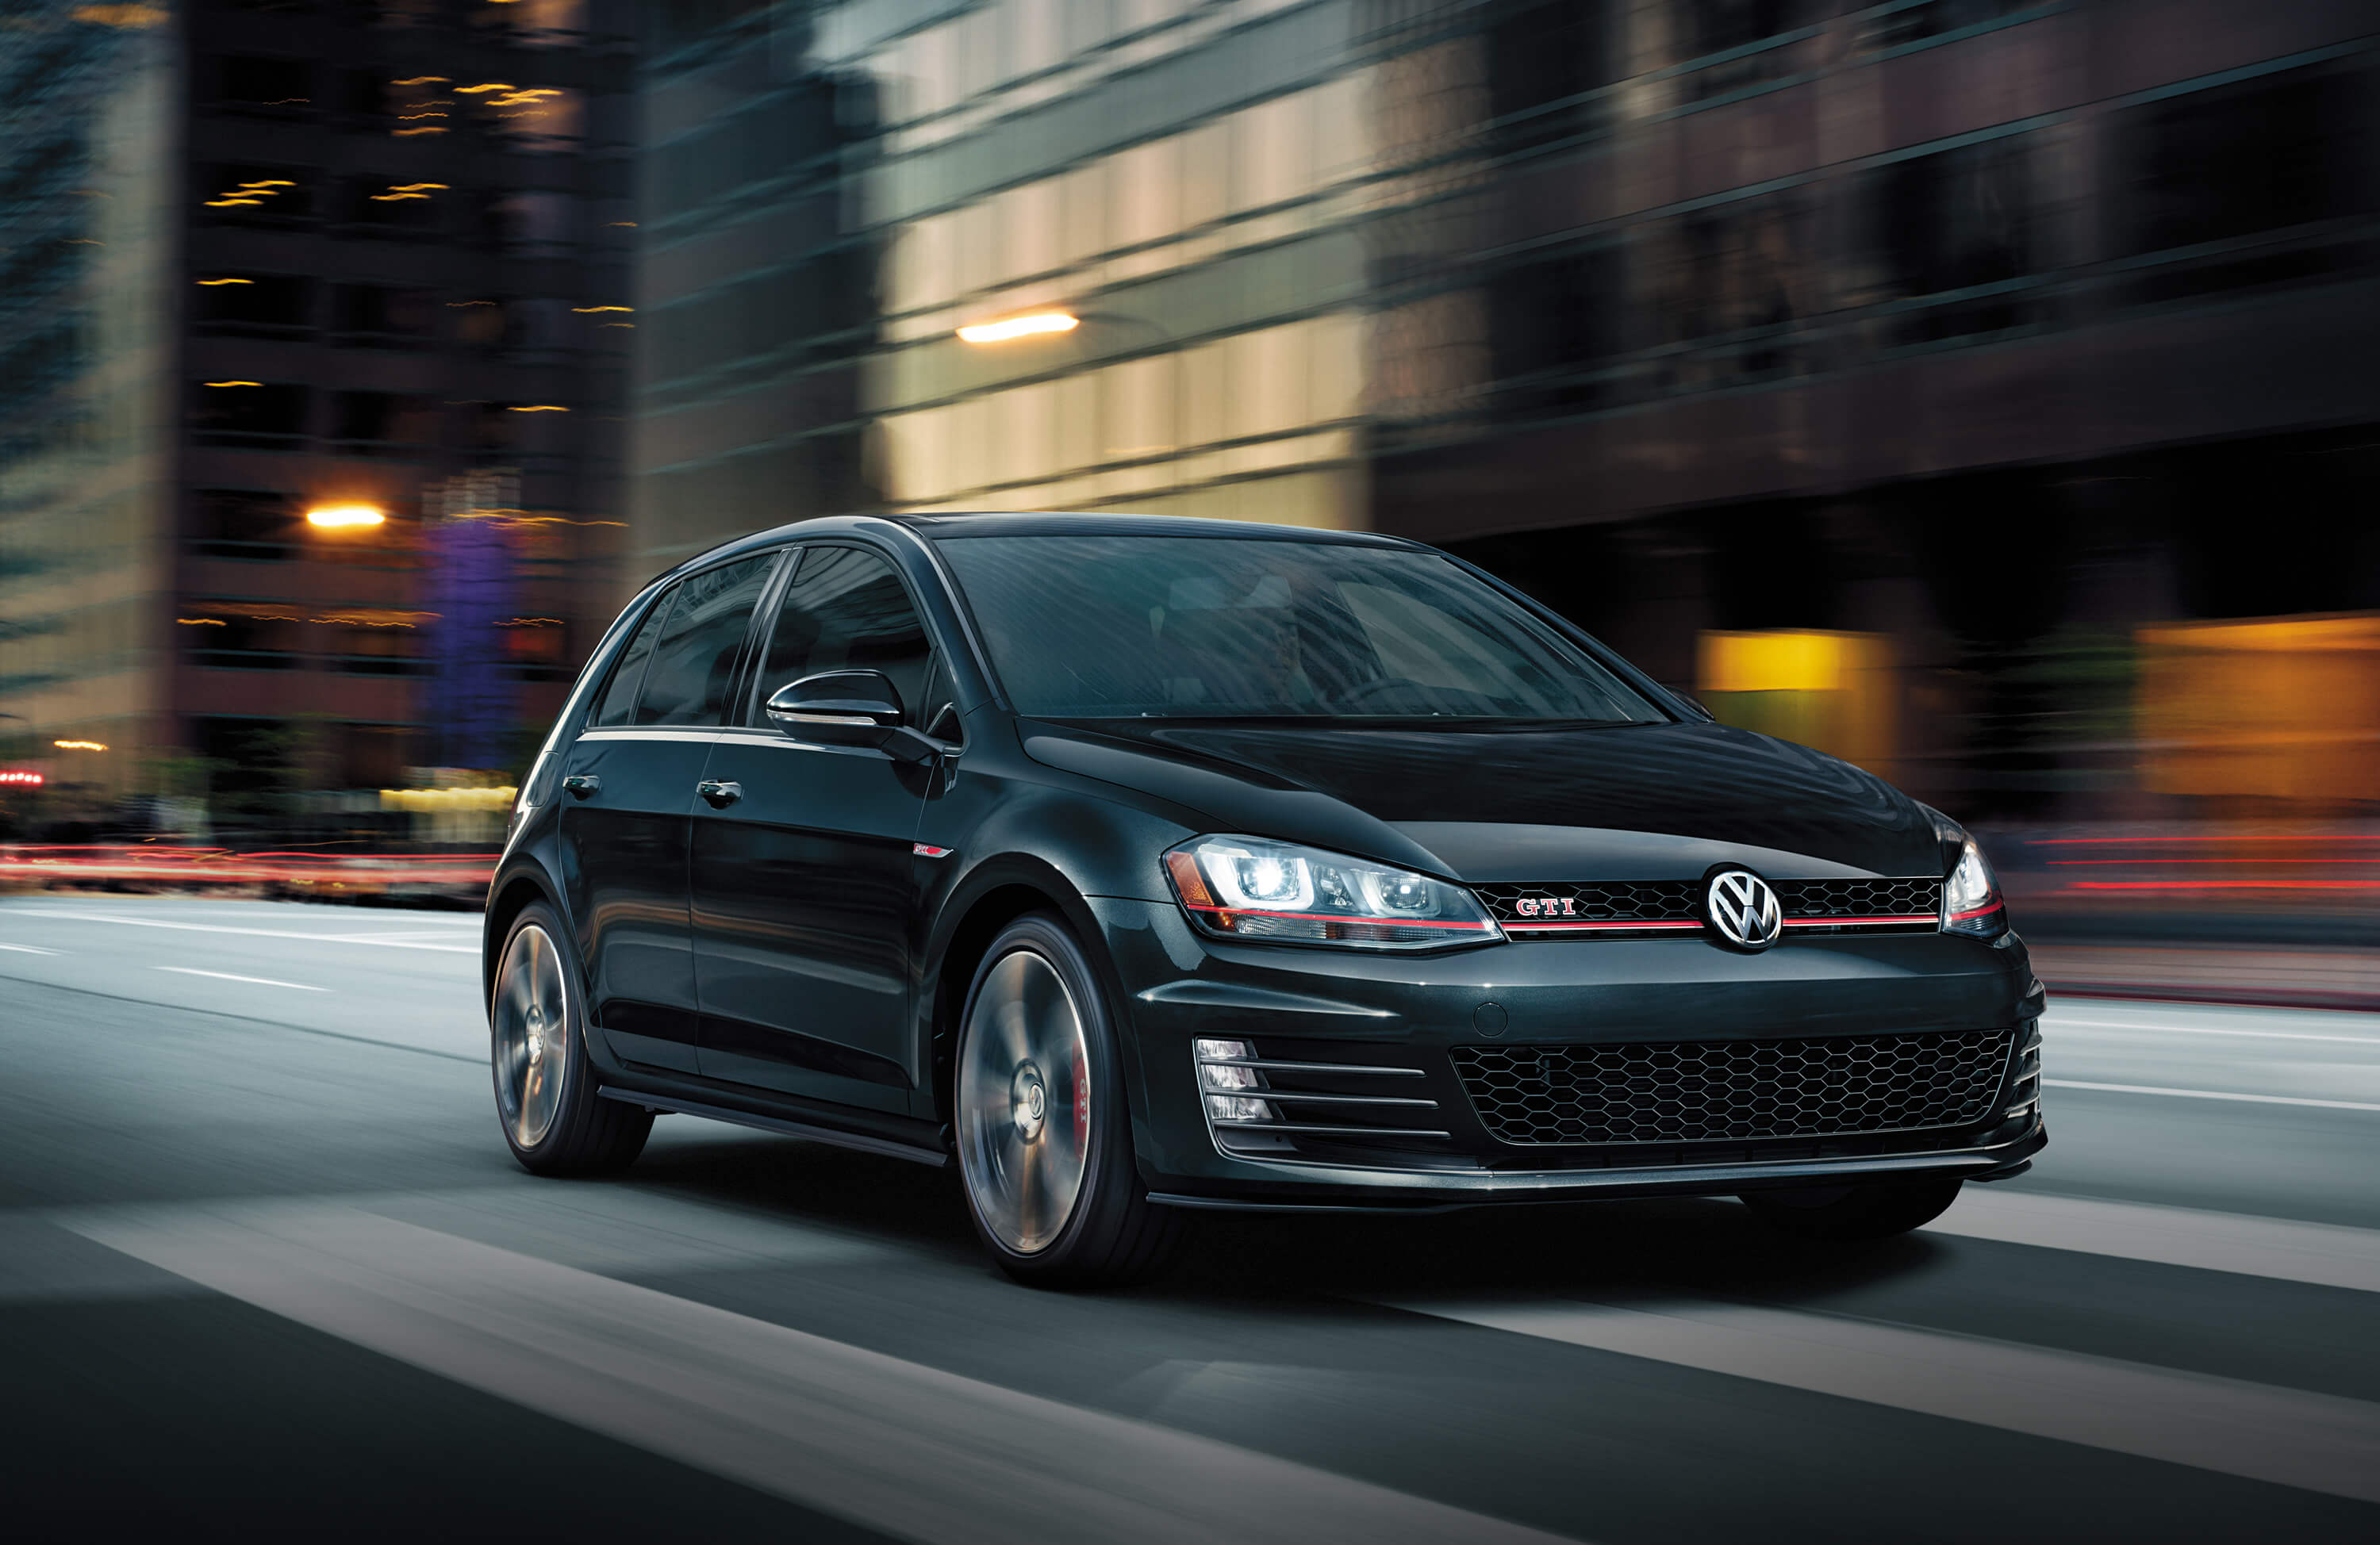 New Volkswagen Golf GTI Lease Deals & Finance fers Van Nuys CA